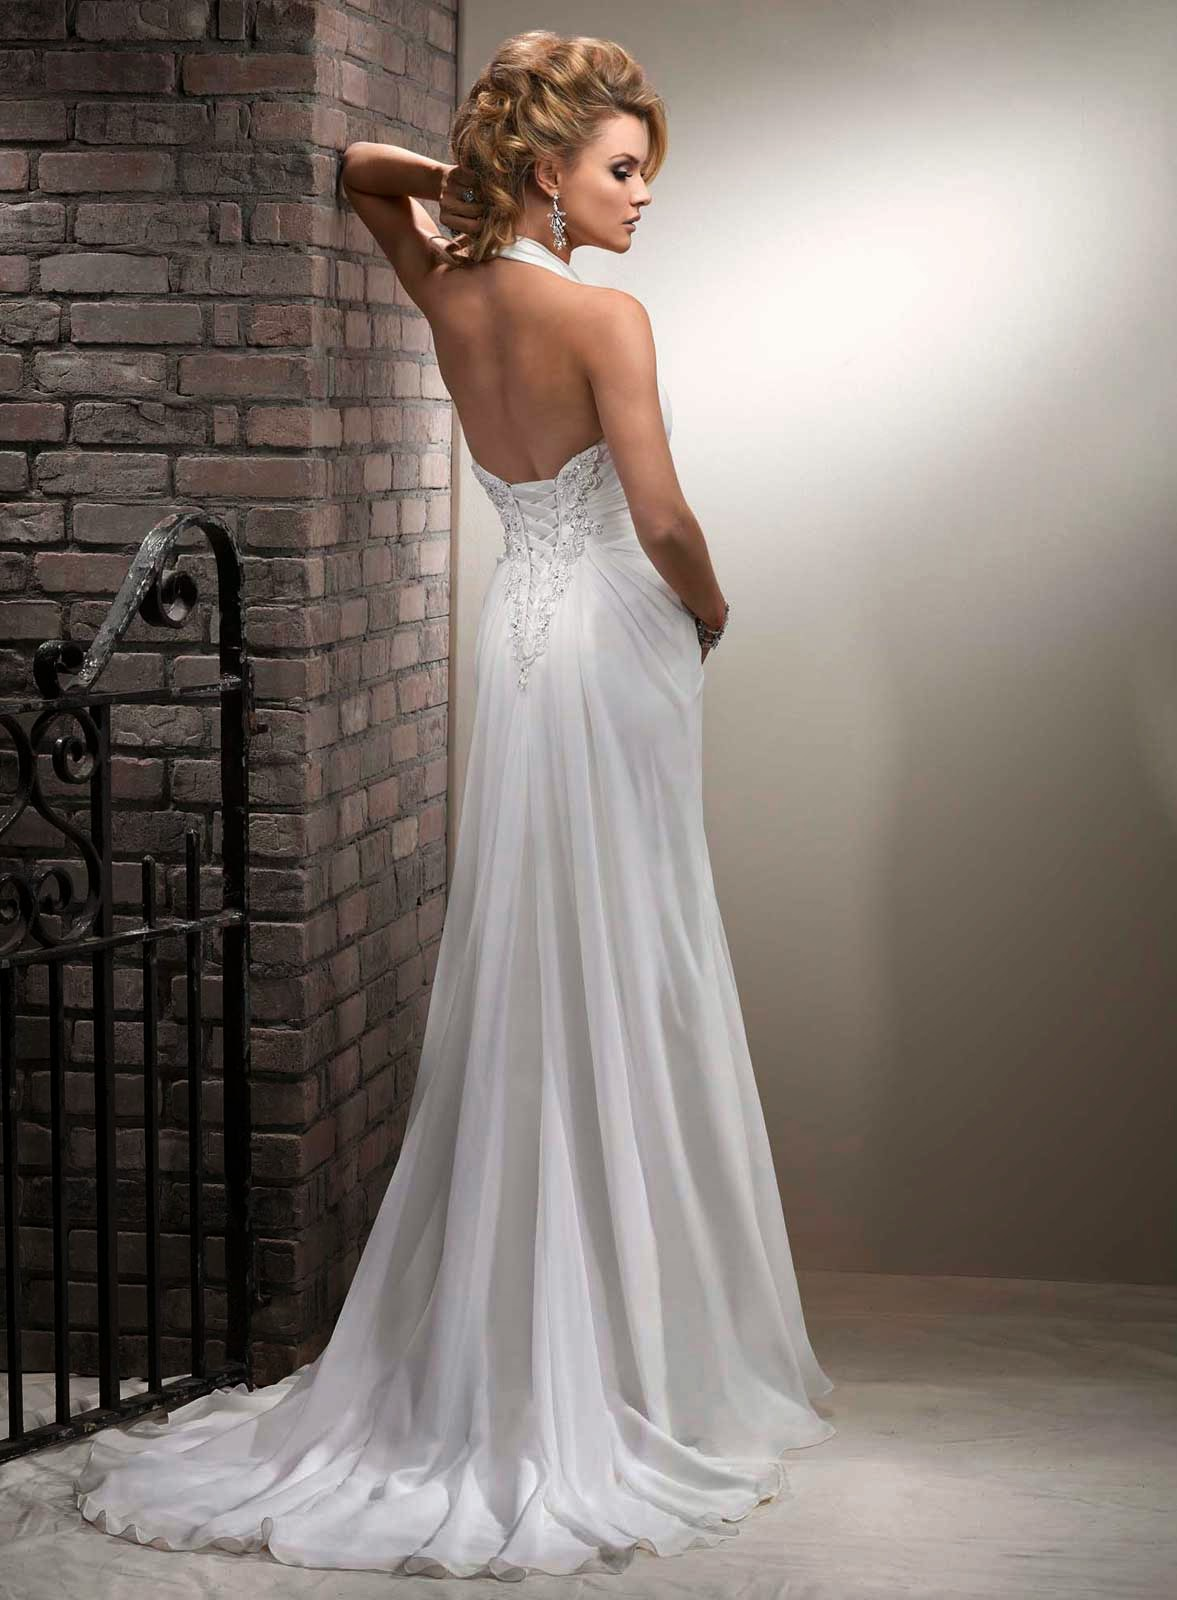 wedding dresses ideas for older brides categories wedding dress